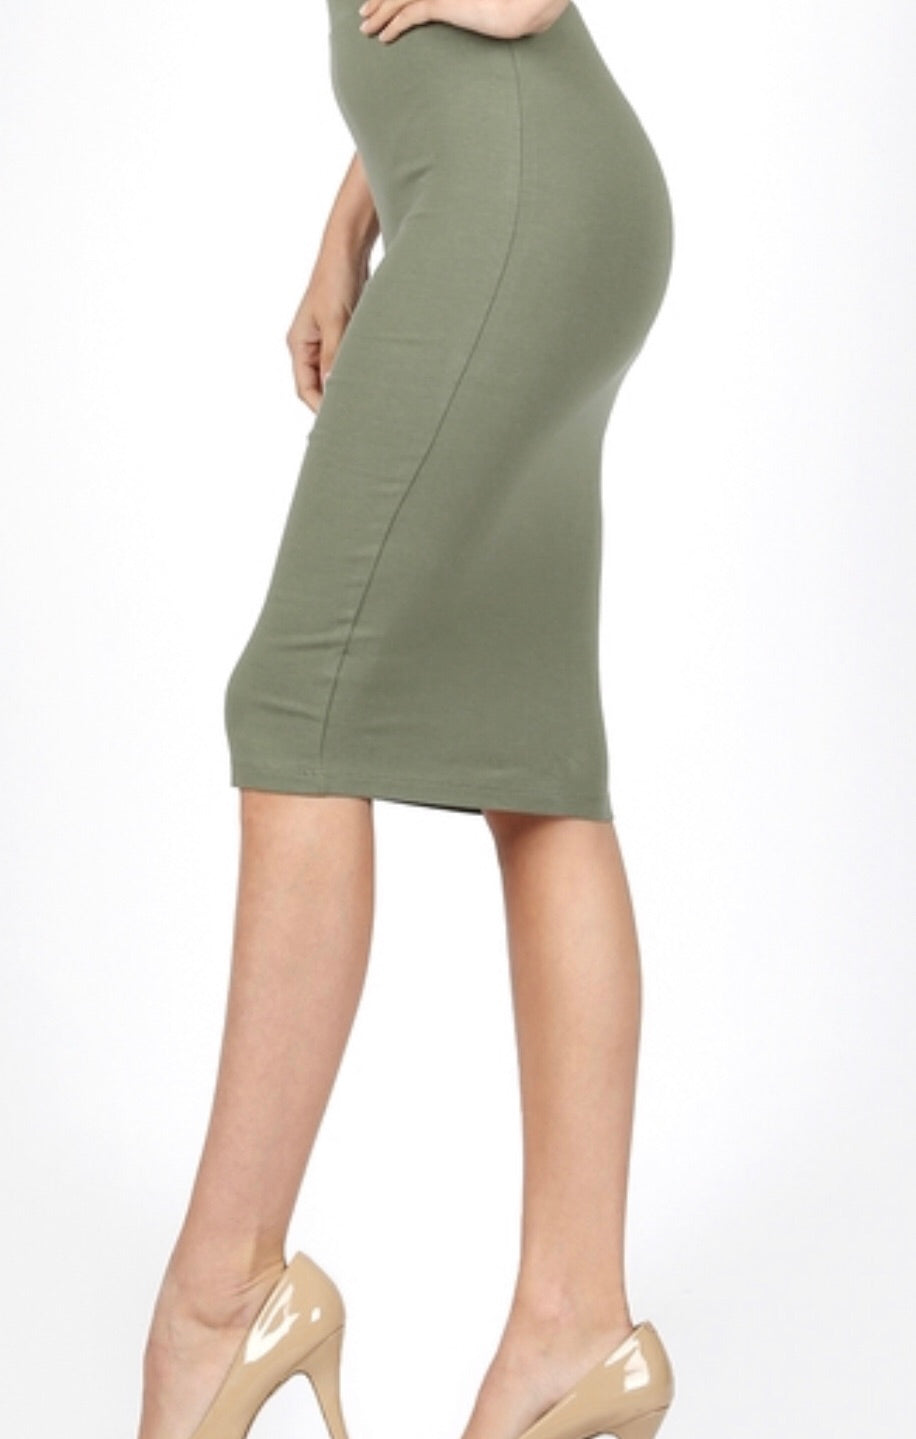 Light Olive Pencil Skirt